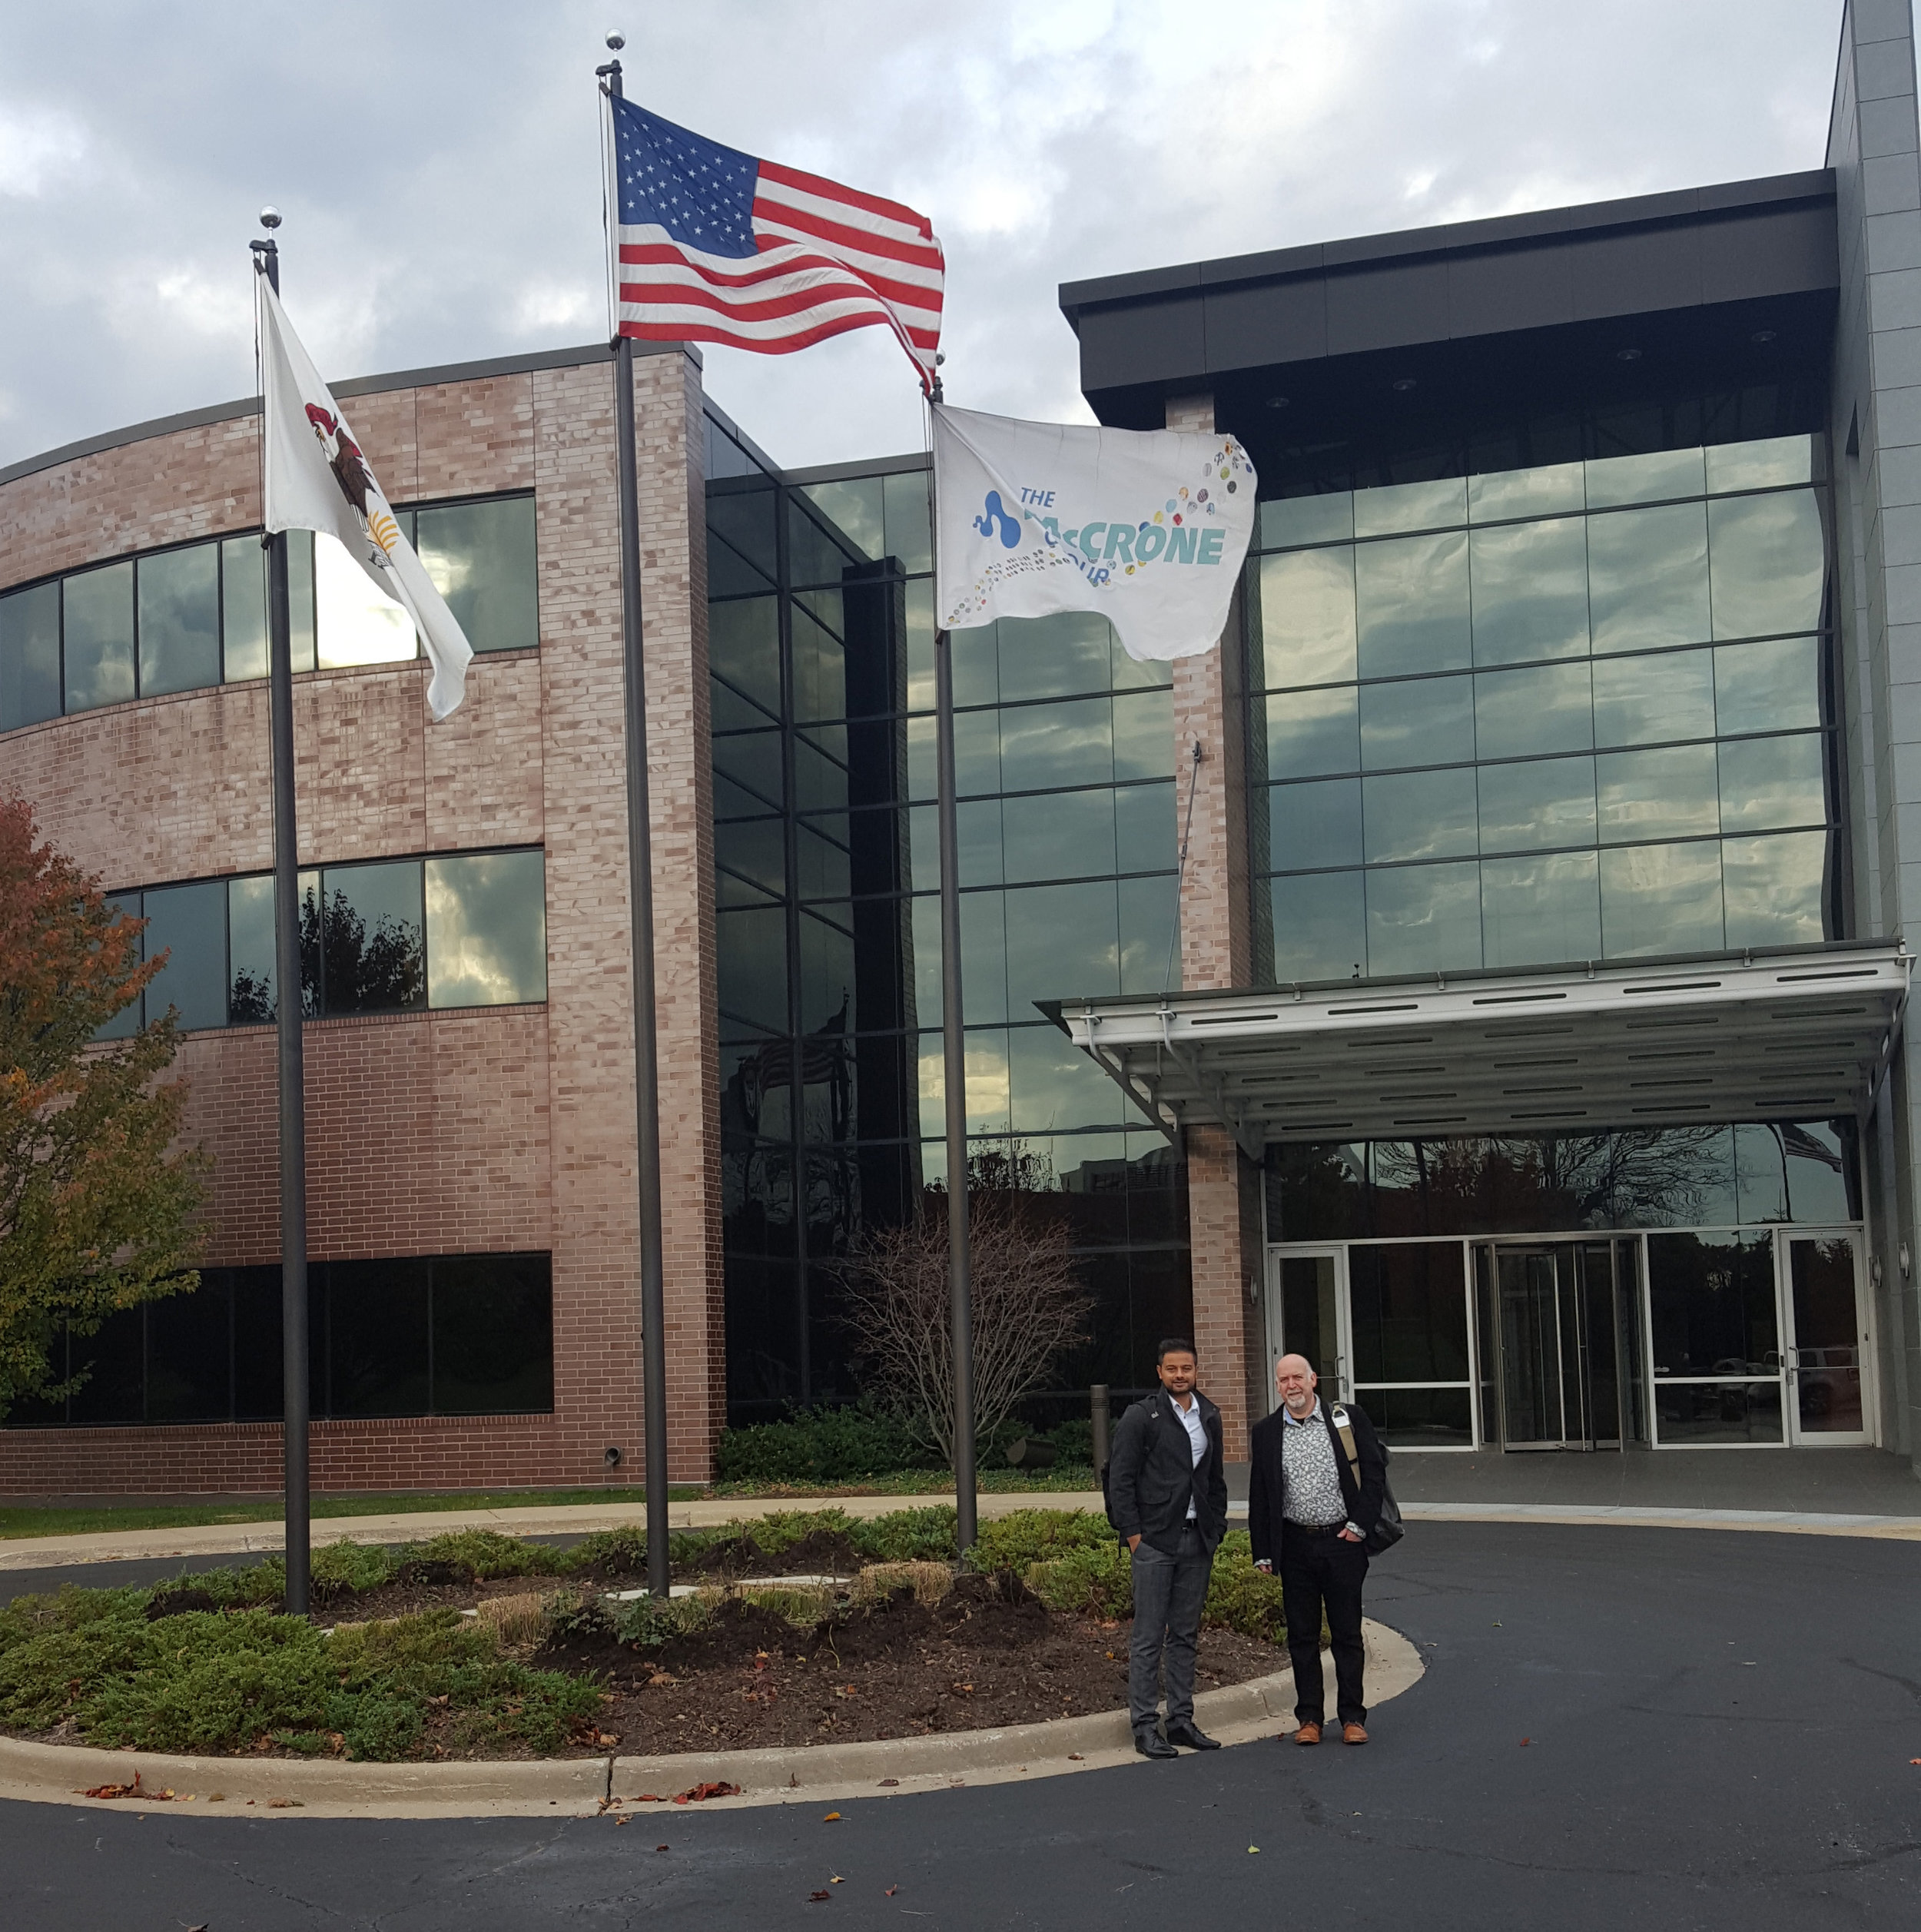 Ricky Patel and Duncan Stacey outside the McCrone building in Illinois.